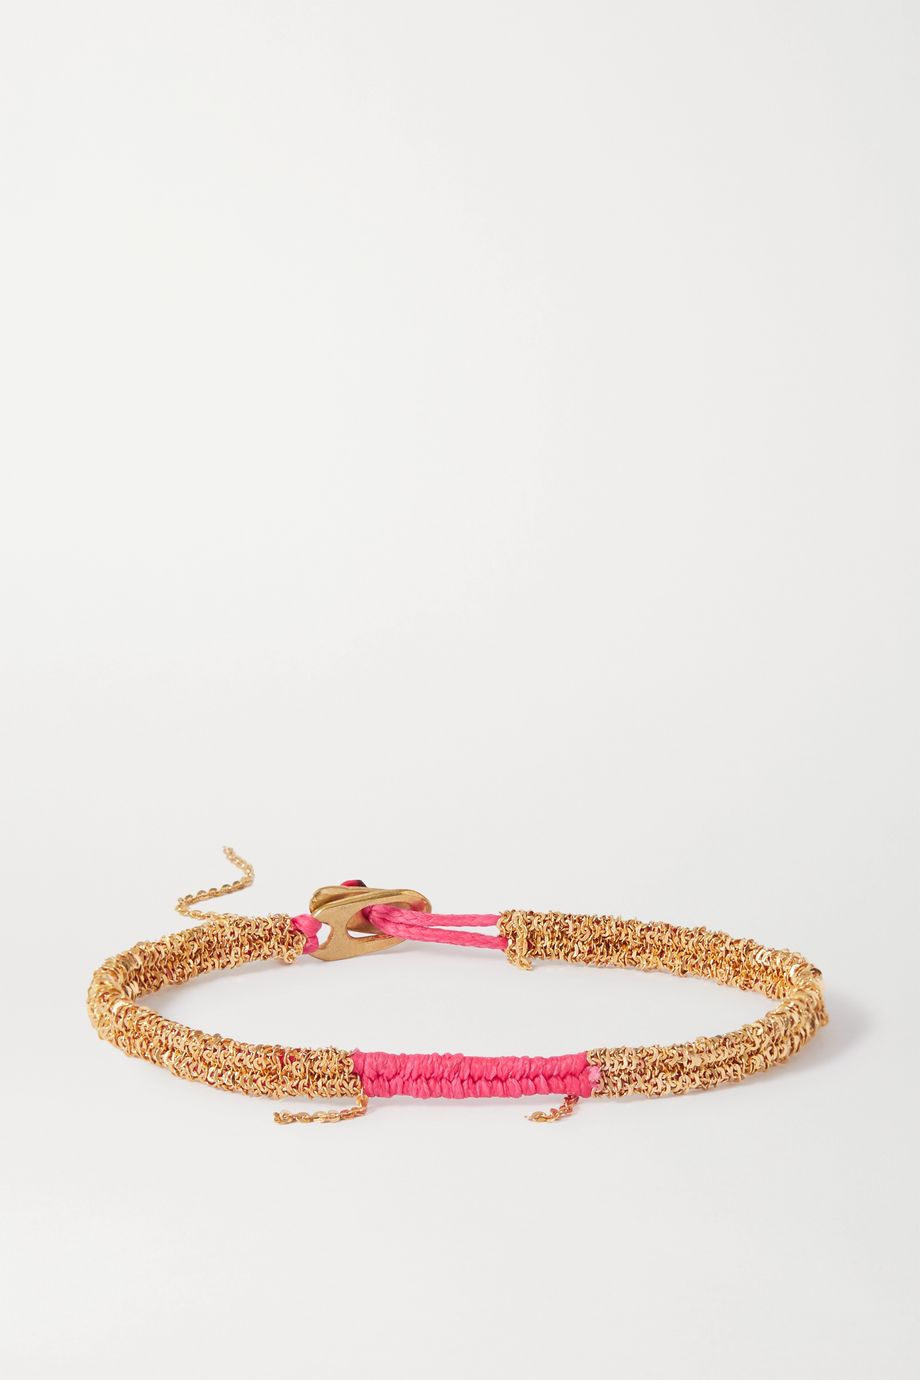 Katia Alpha Woven cord and gold vermeil bracelet